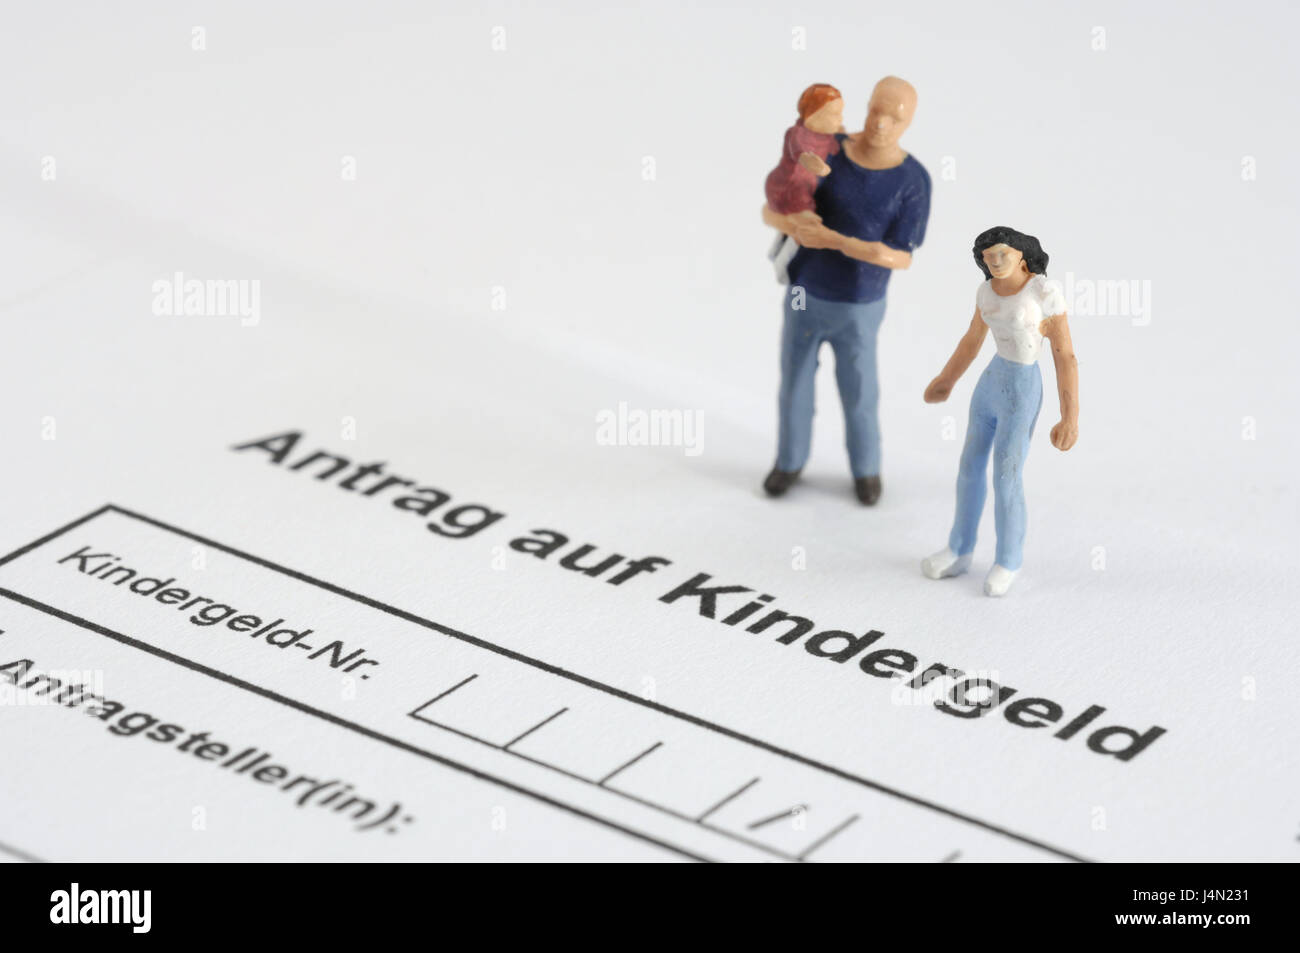 Form, application, child benefit, characters, family, model characters, payment, capacities, subsidy, family support, - Stock Image